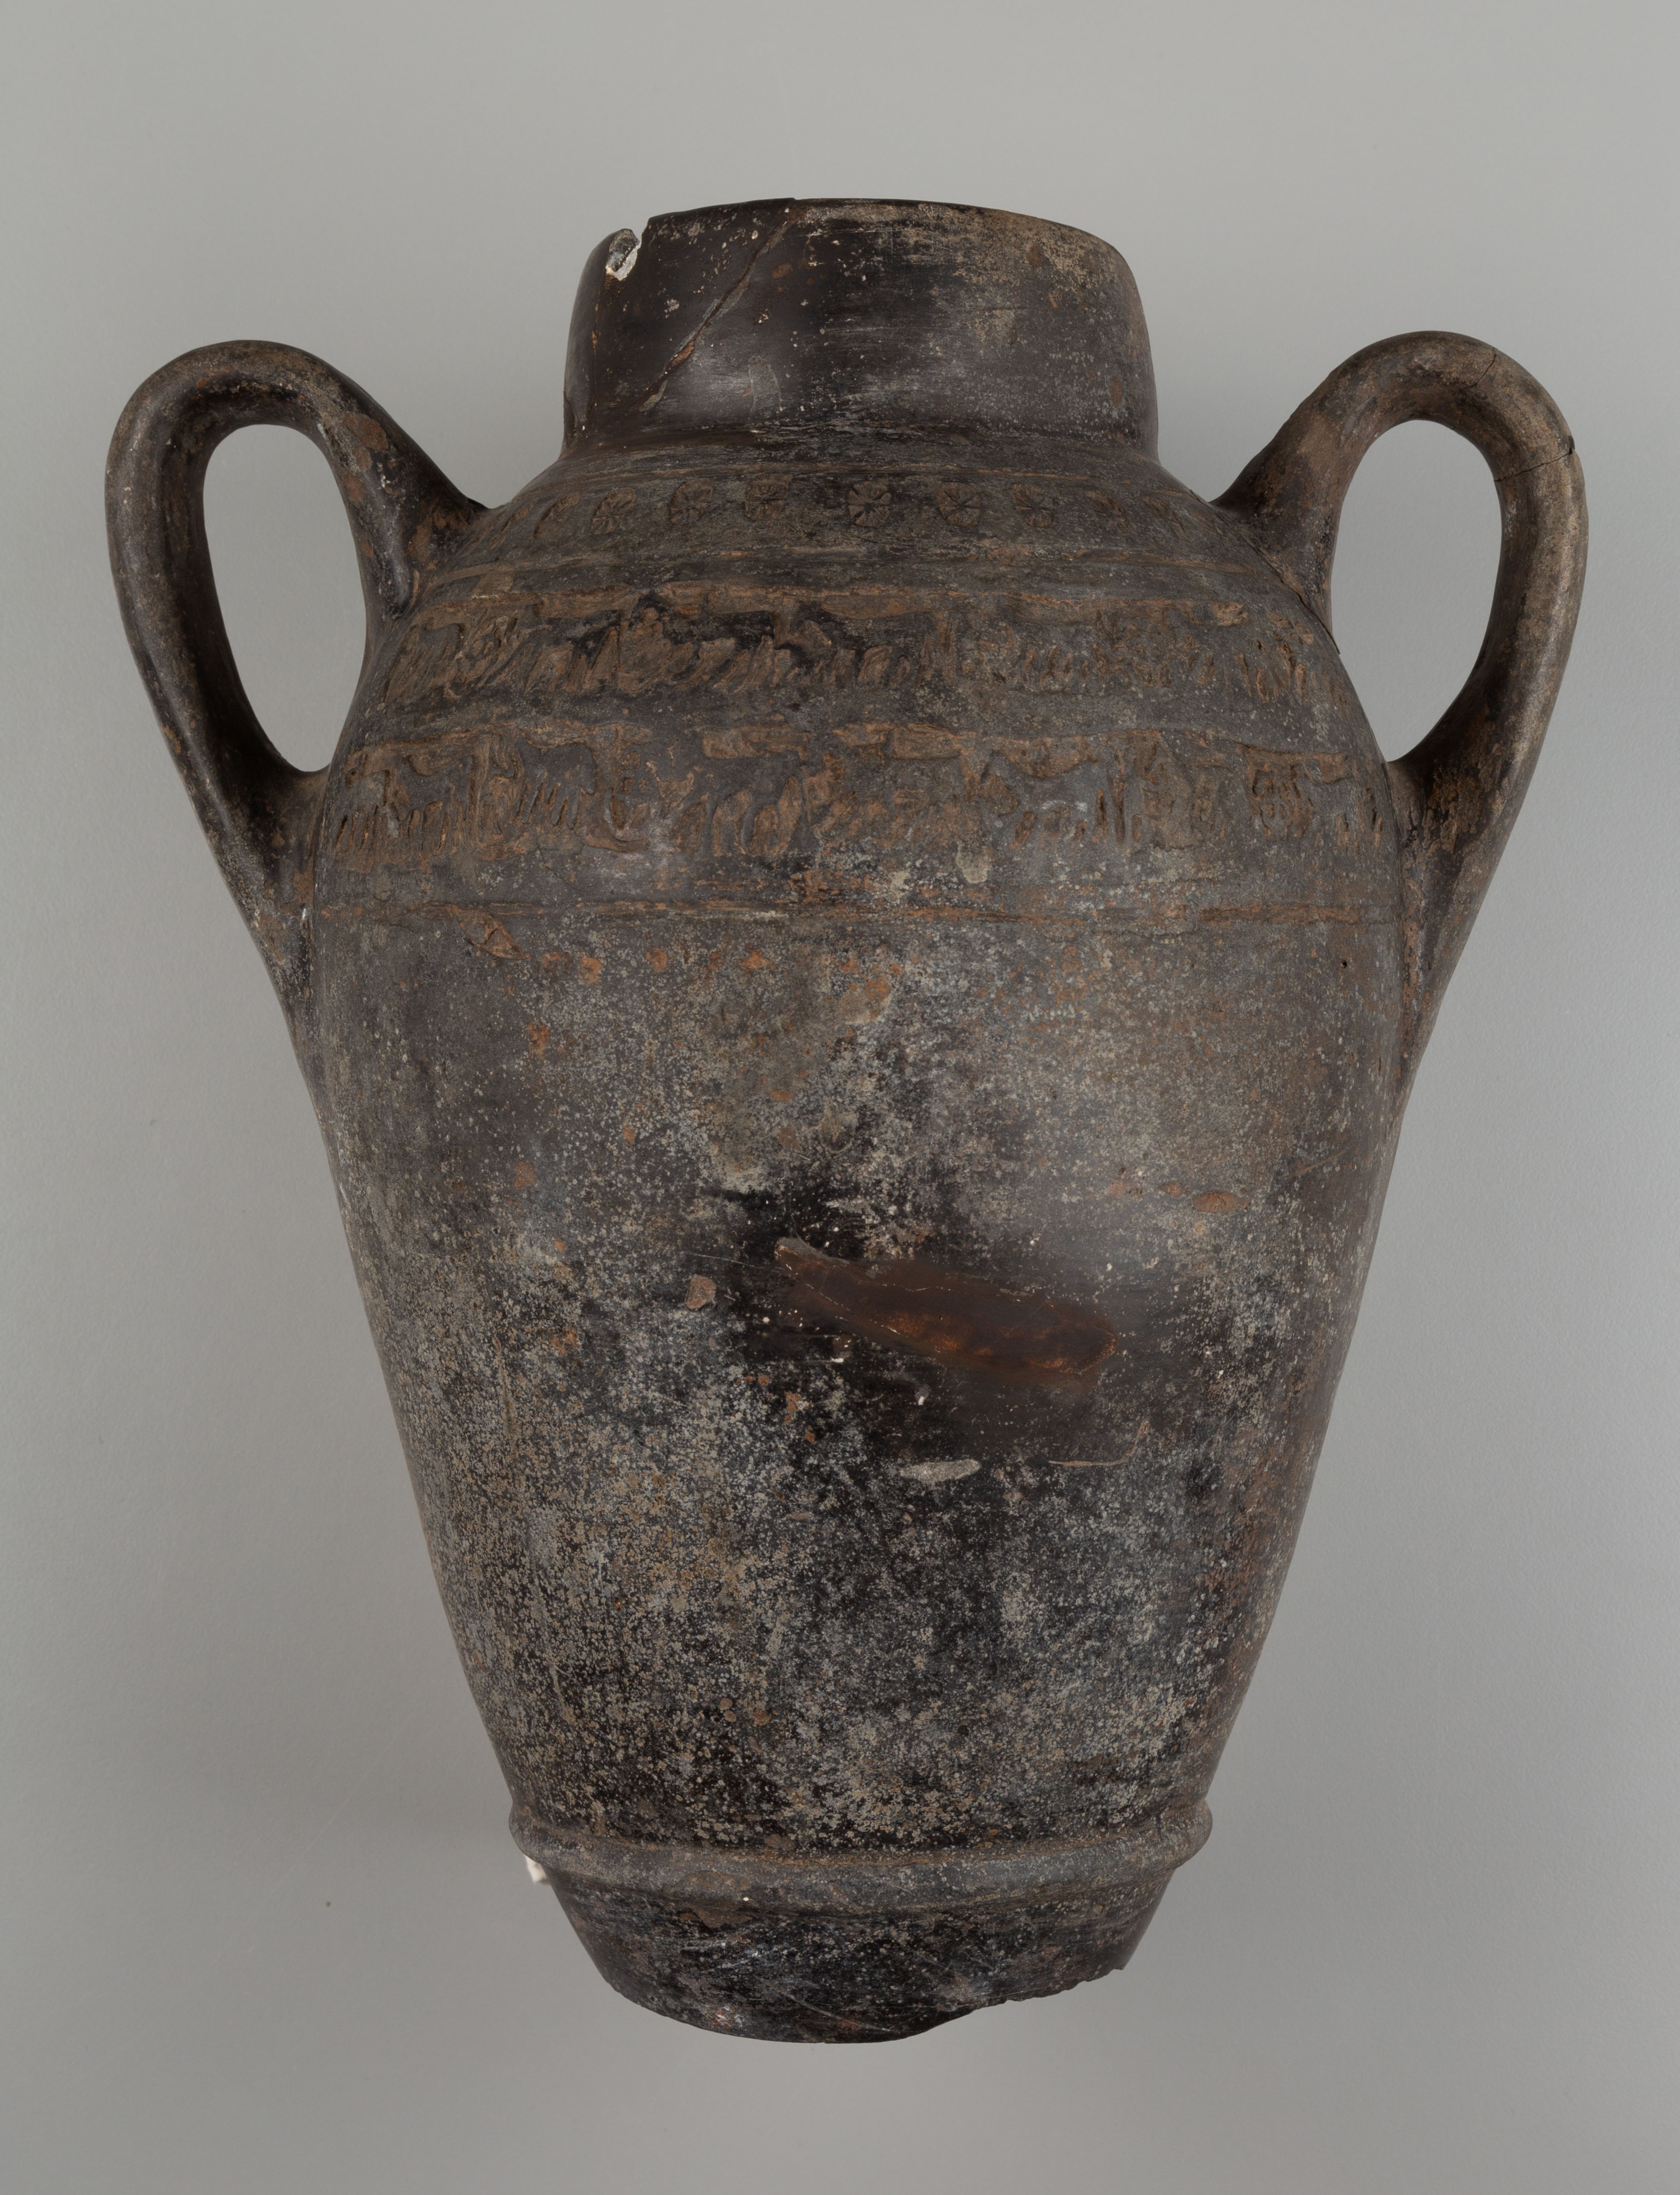 This photograph shows a side view of a vessel with two curved handles and no base. There are pale surface encrustations and one small area that is darker in color in the center.